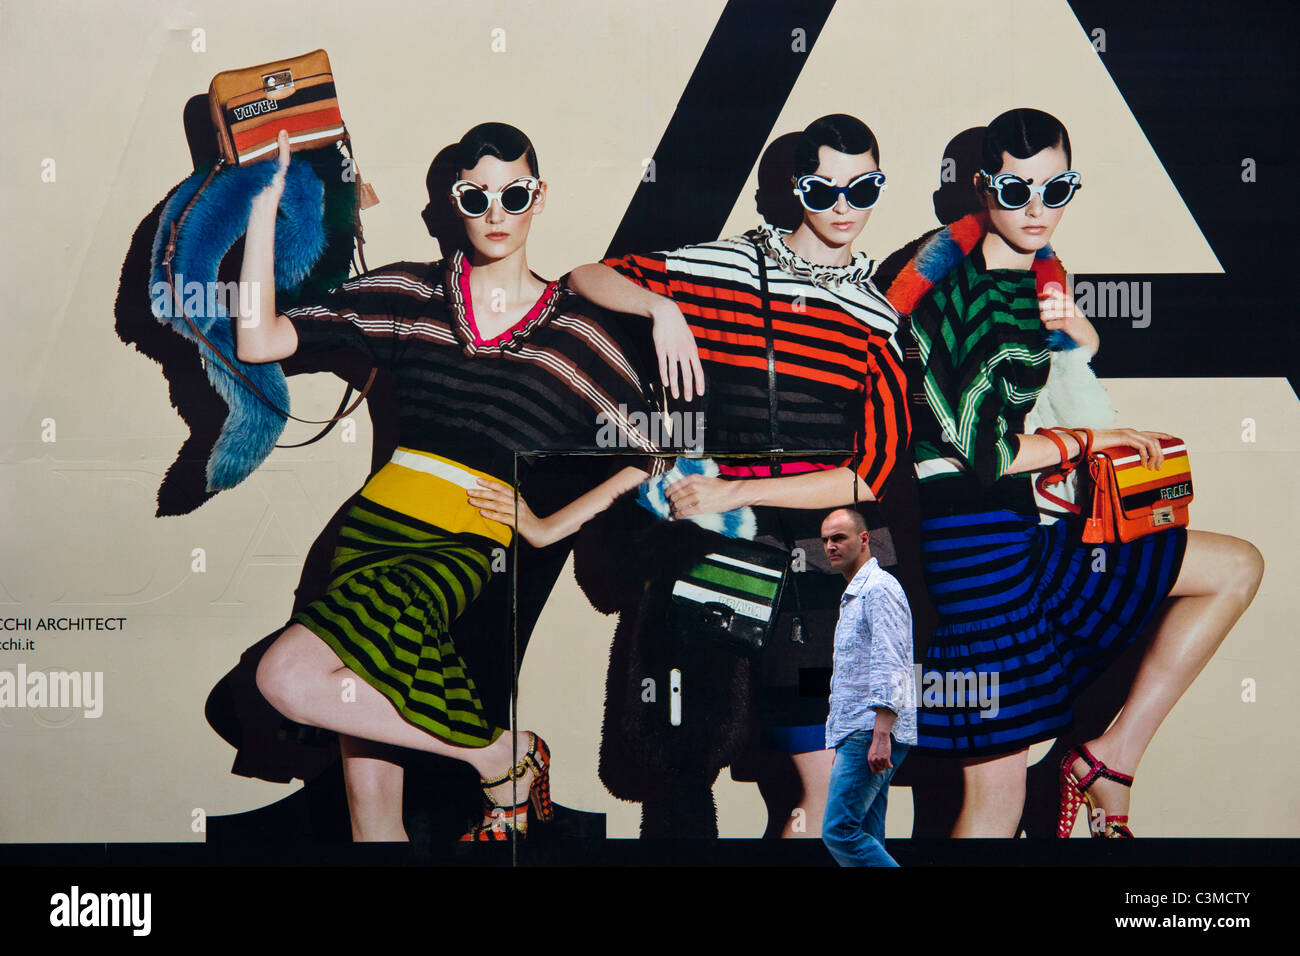 Prada advertisement outside their boutique at 6 Rue Fbg St Honoré, Paris Stock Photo